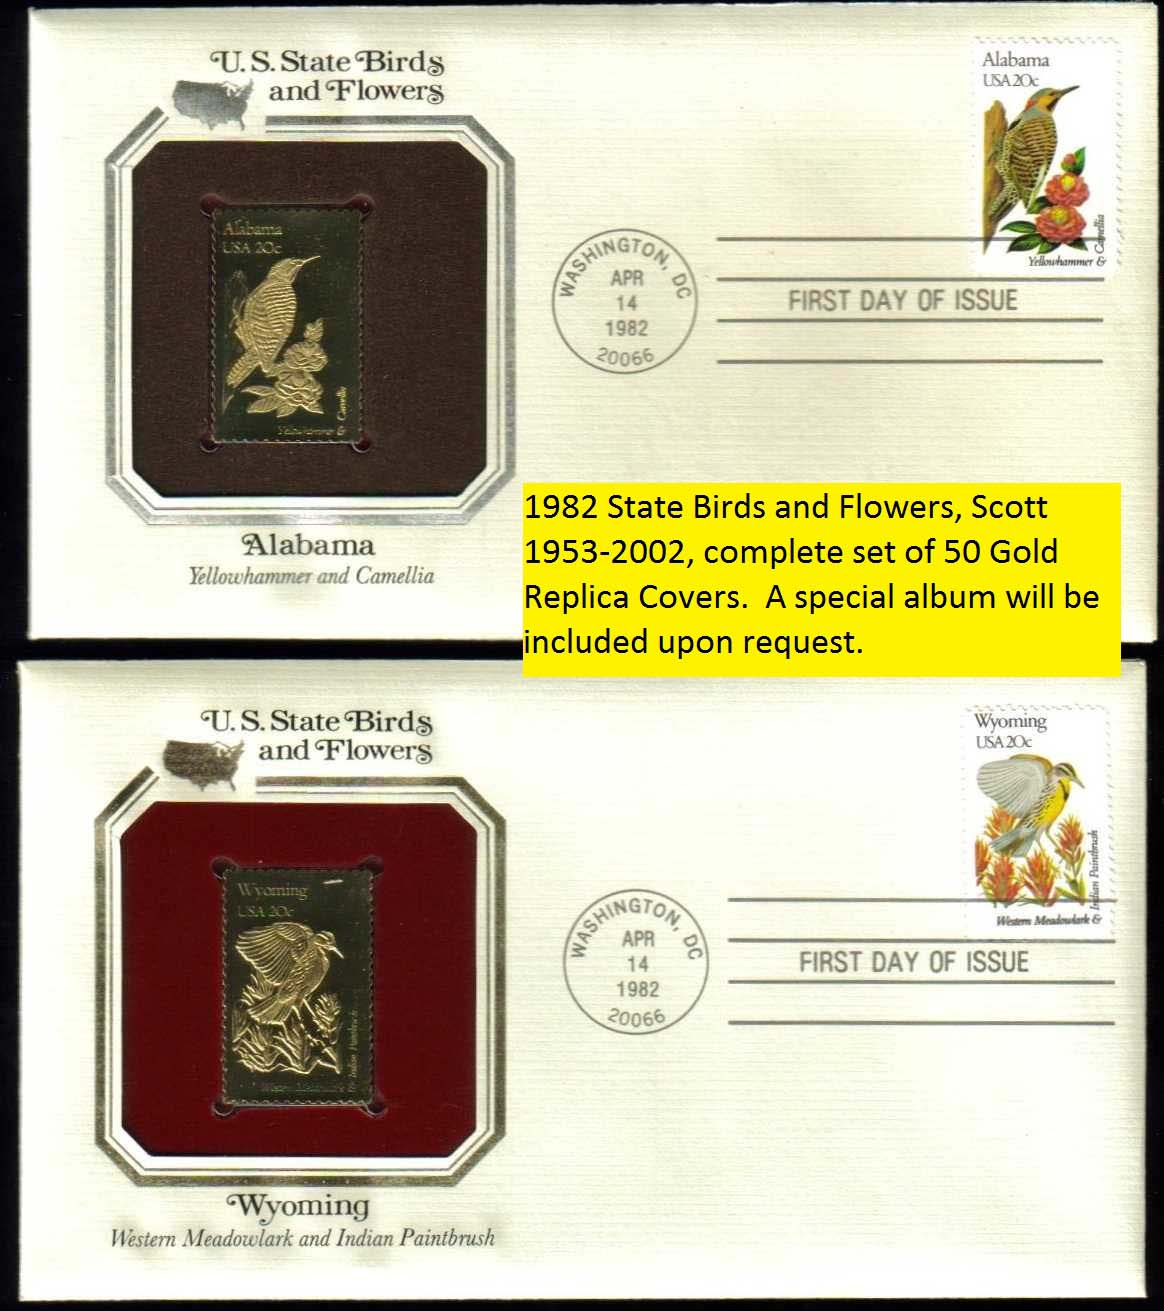 "Scott 1953-2002 Golden Replica (22Kt) unaddressed FDC, Set of 50 <p> <a href=""/images/USA-Scott-1953-2002A-Gold.jpg""><font color=green><b>View the 1st image, </a></b></font><br> <a href=""/images/USA-Scott-1953-2002B-Gold.jpg""><font color=green> <b>View the 2nd image</a></b></font> <br> <a href=""/images/USA-Scott-1953-2002C-Gold.jpg""><font color=green> <b>View the 3rd image</a></b></font>"